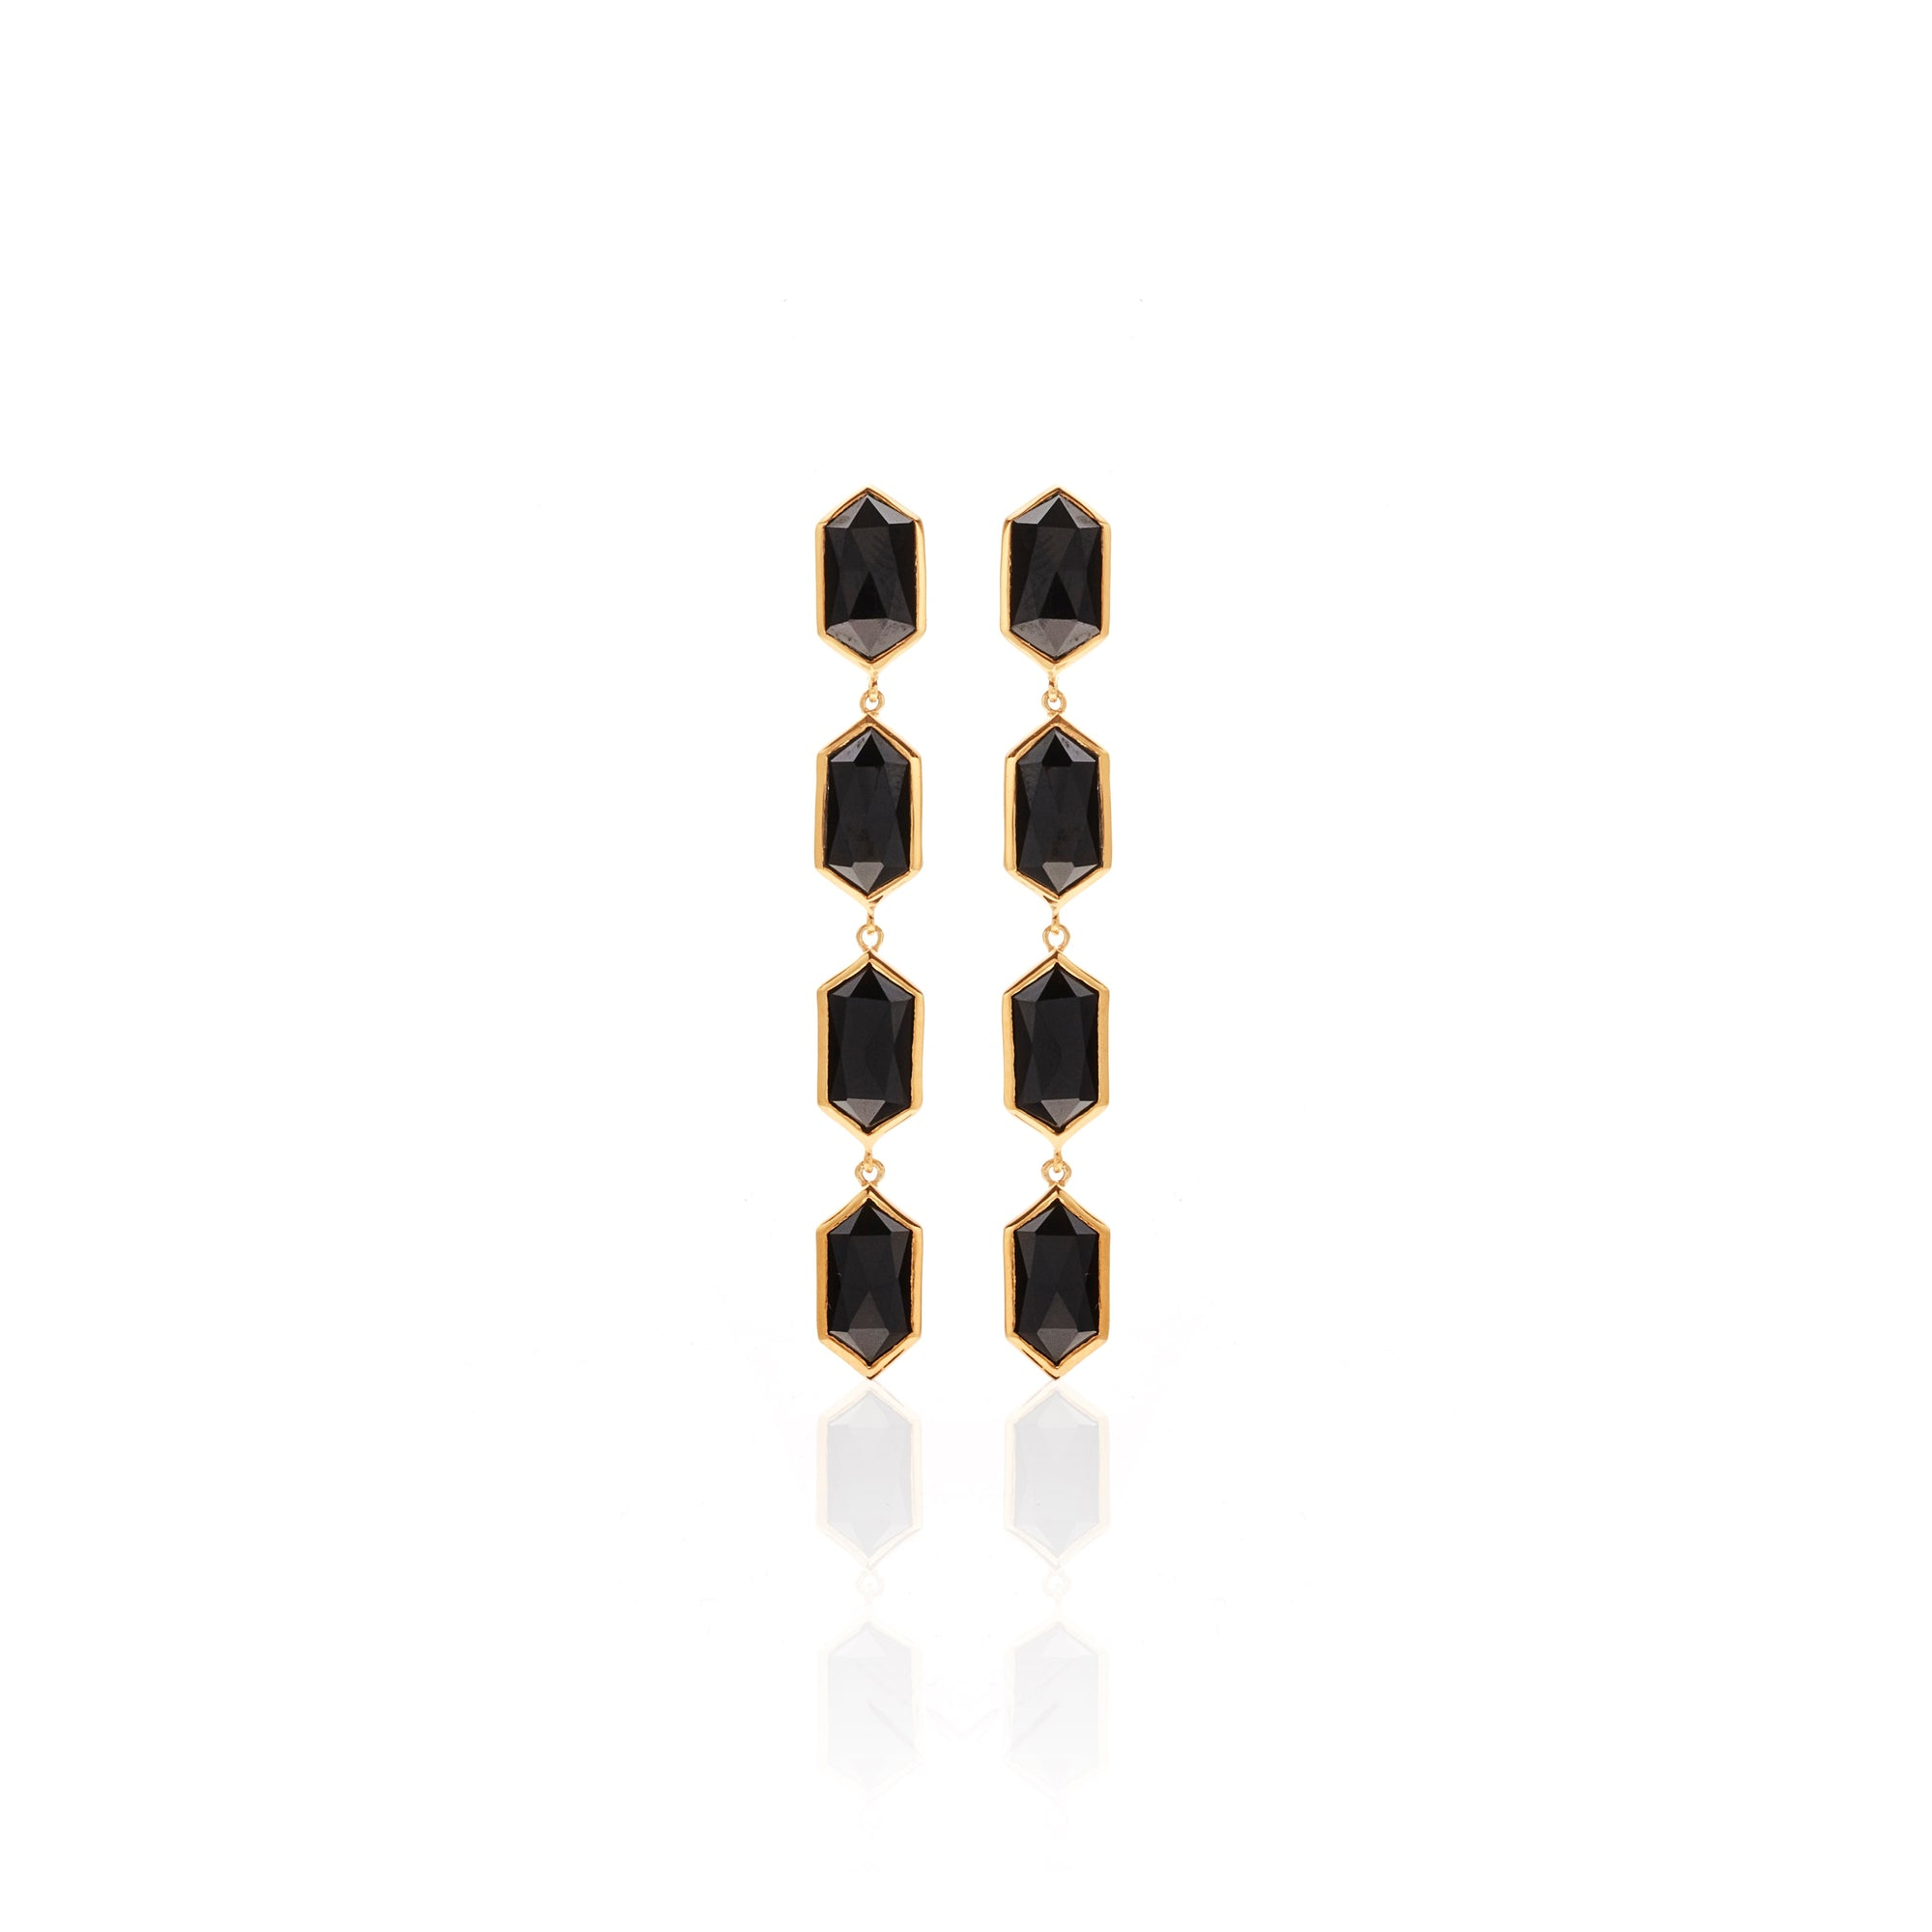 Silk&Steel Jewellery Reign Earrings Black Spinel and Gold from Haveli Collection